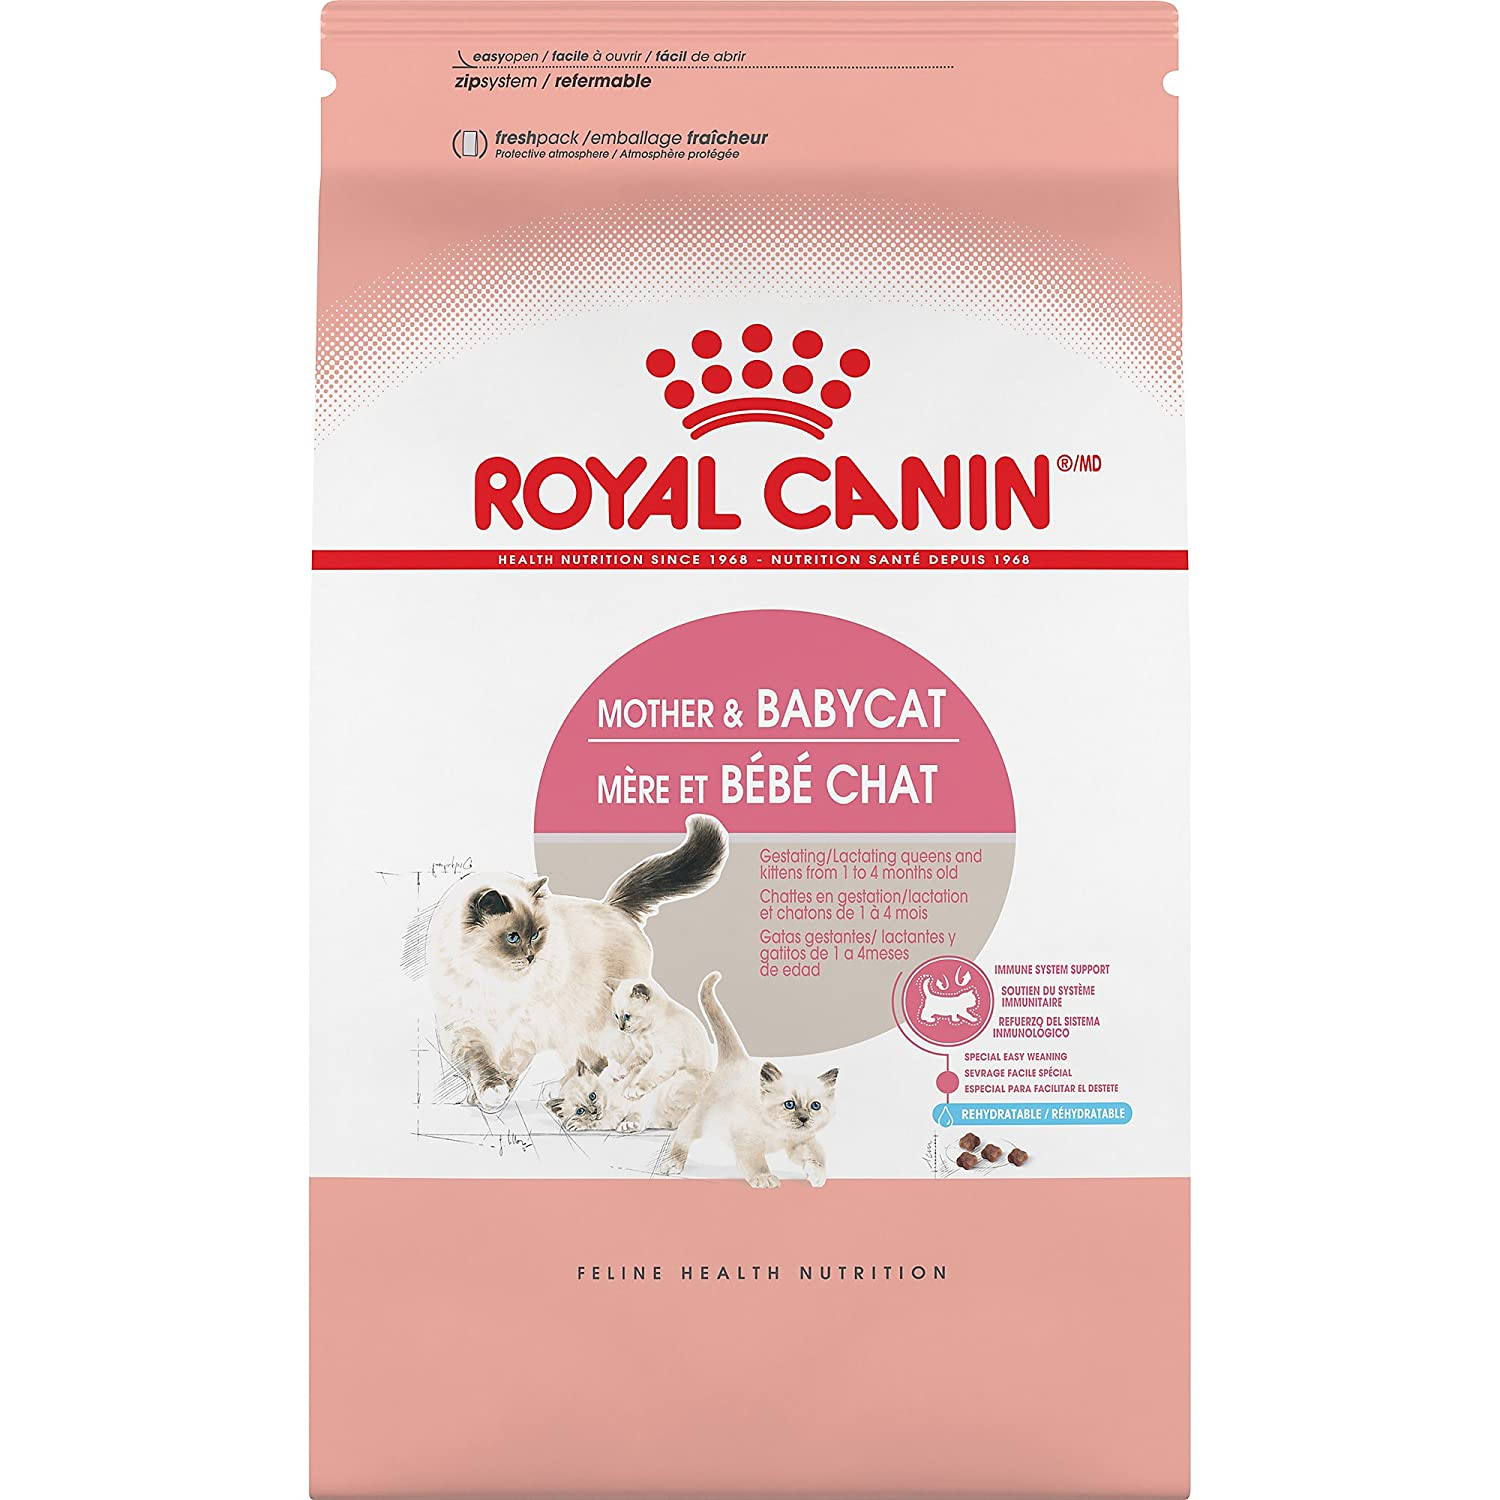 Amazon.com : Royal Canin 1Count Feline Health Nutrition mother & Baby Dry Cat Food, 7 lb : Pet Supplies